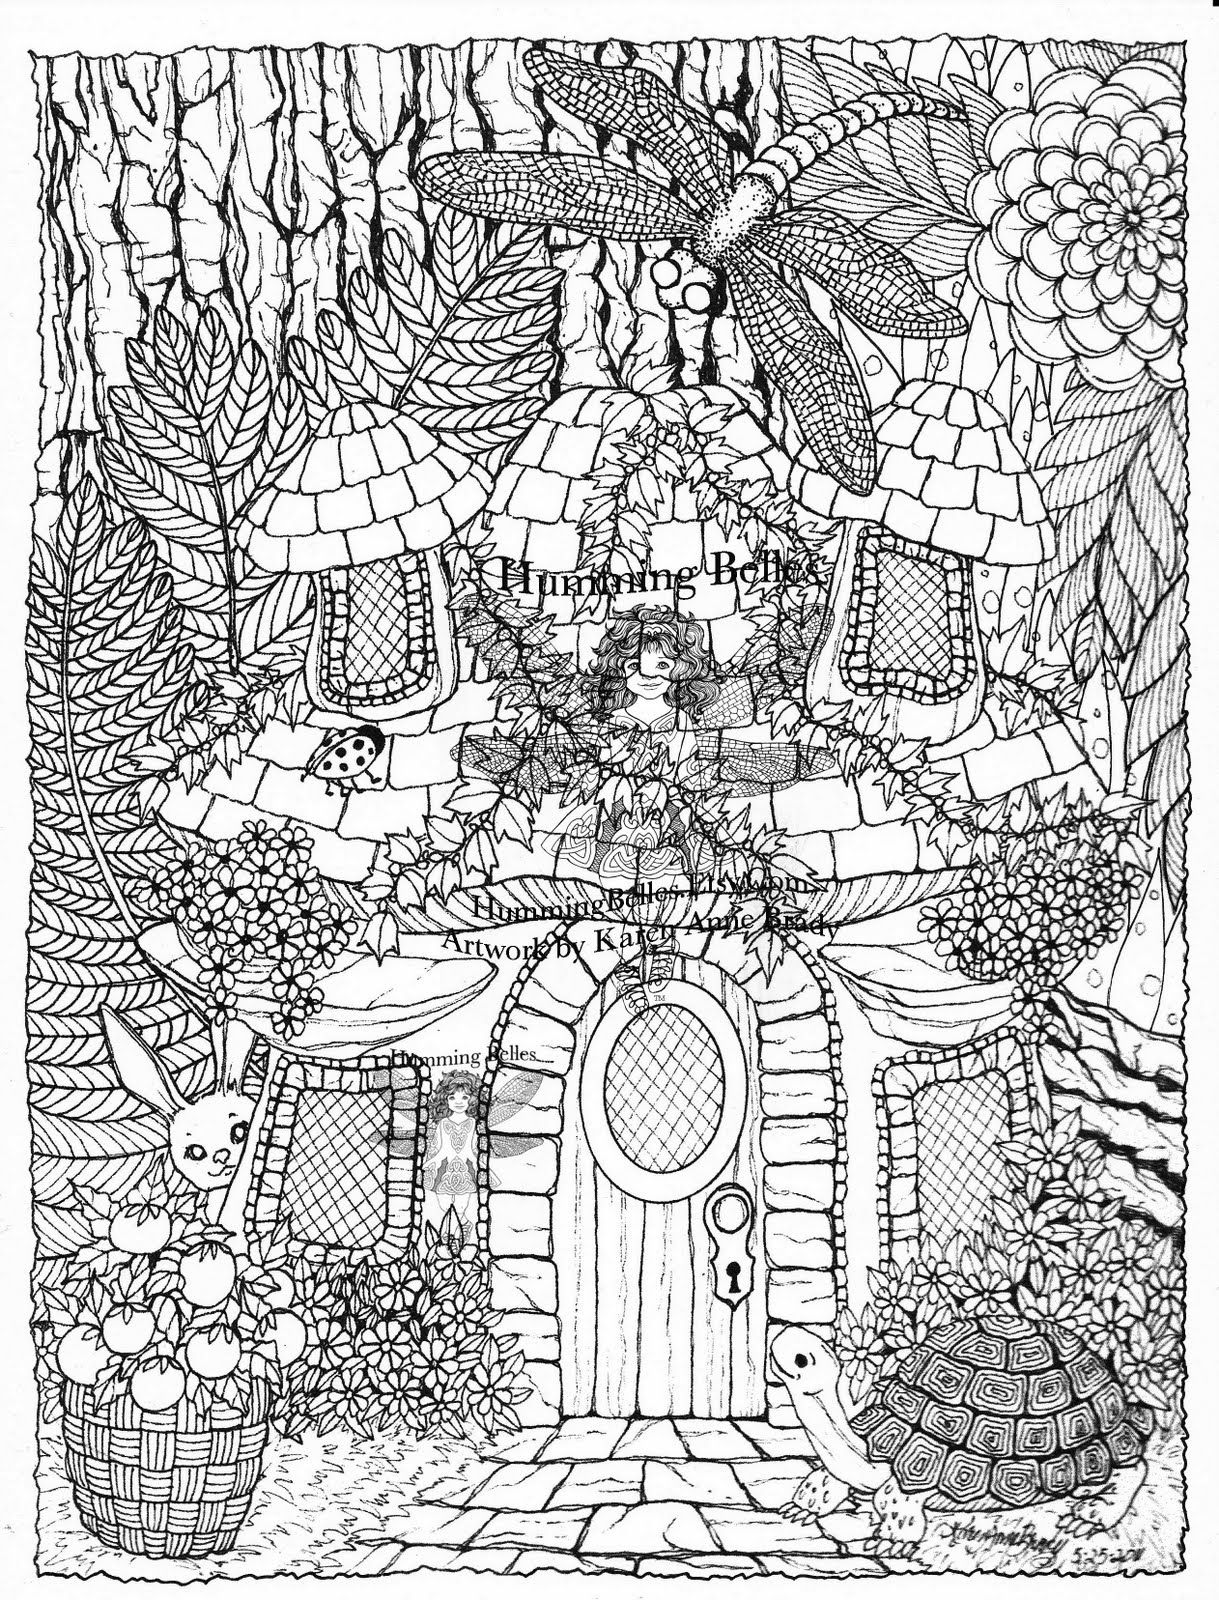 Detailed Coloring Pages For Adults Irelandbrady Musings To